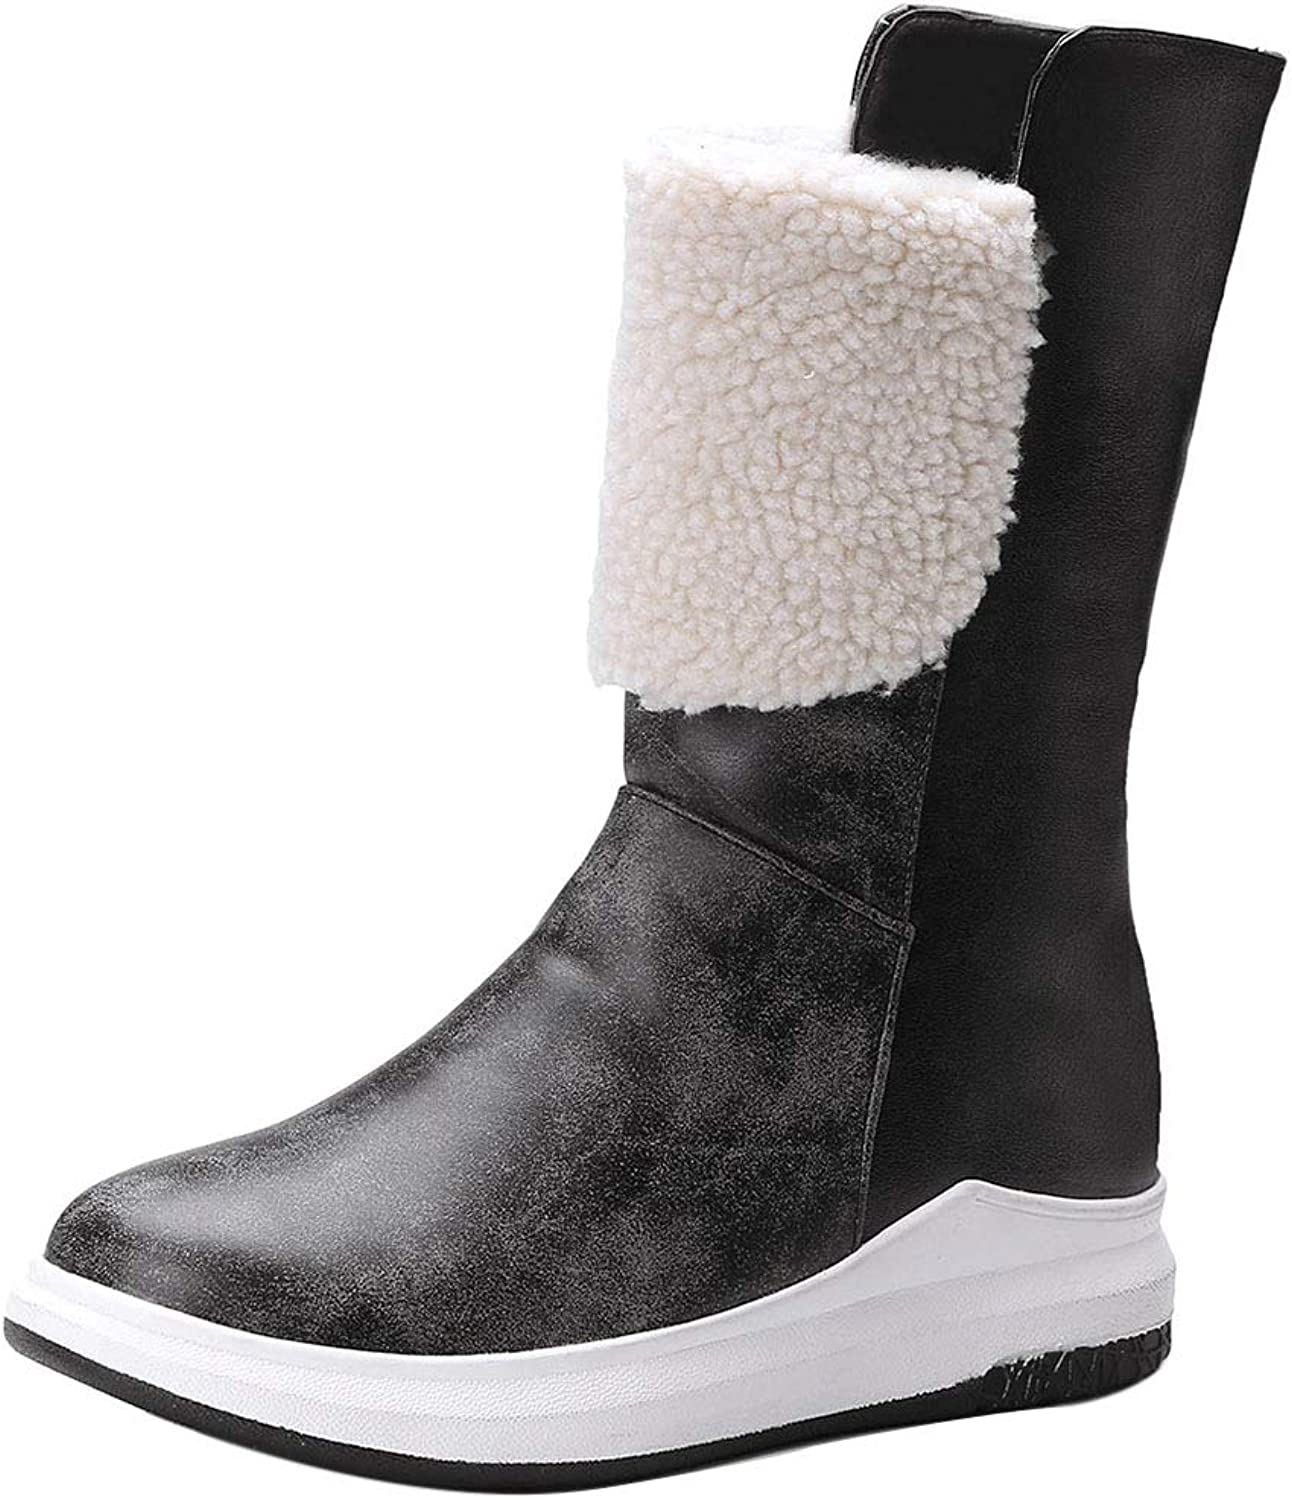 RizaBina Fashion Snow Boots for Women Warm Lining Shearling Boots Mid Calf Winter Boots